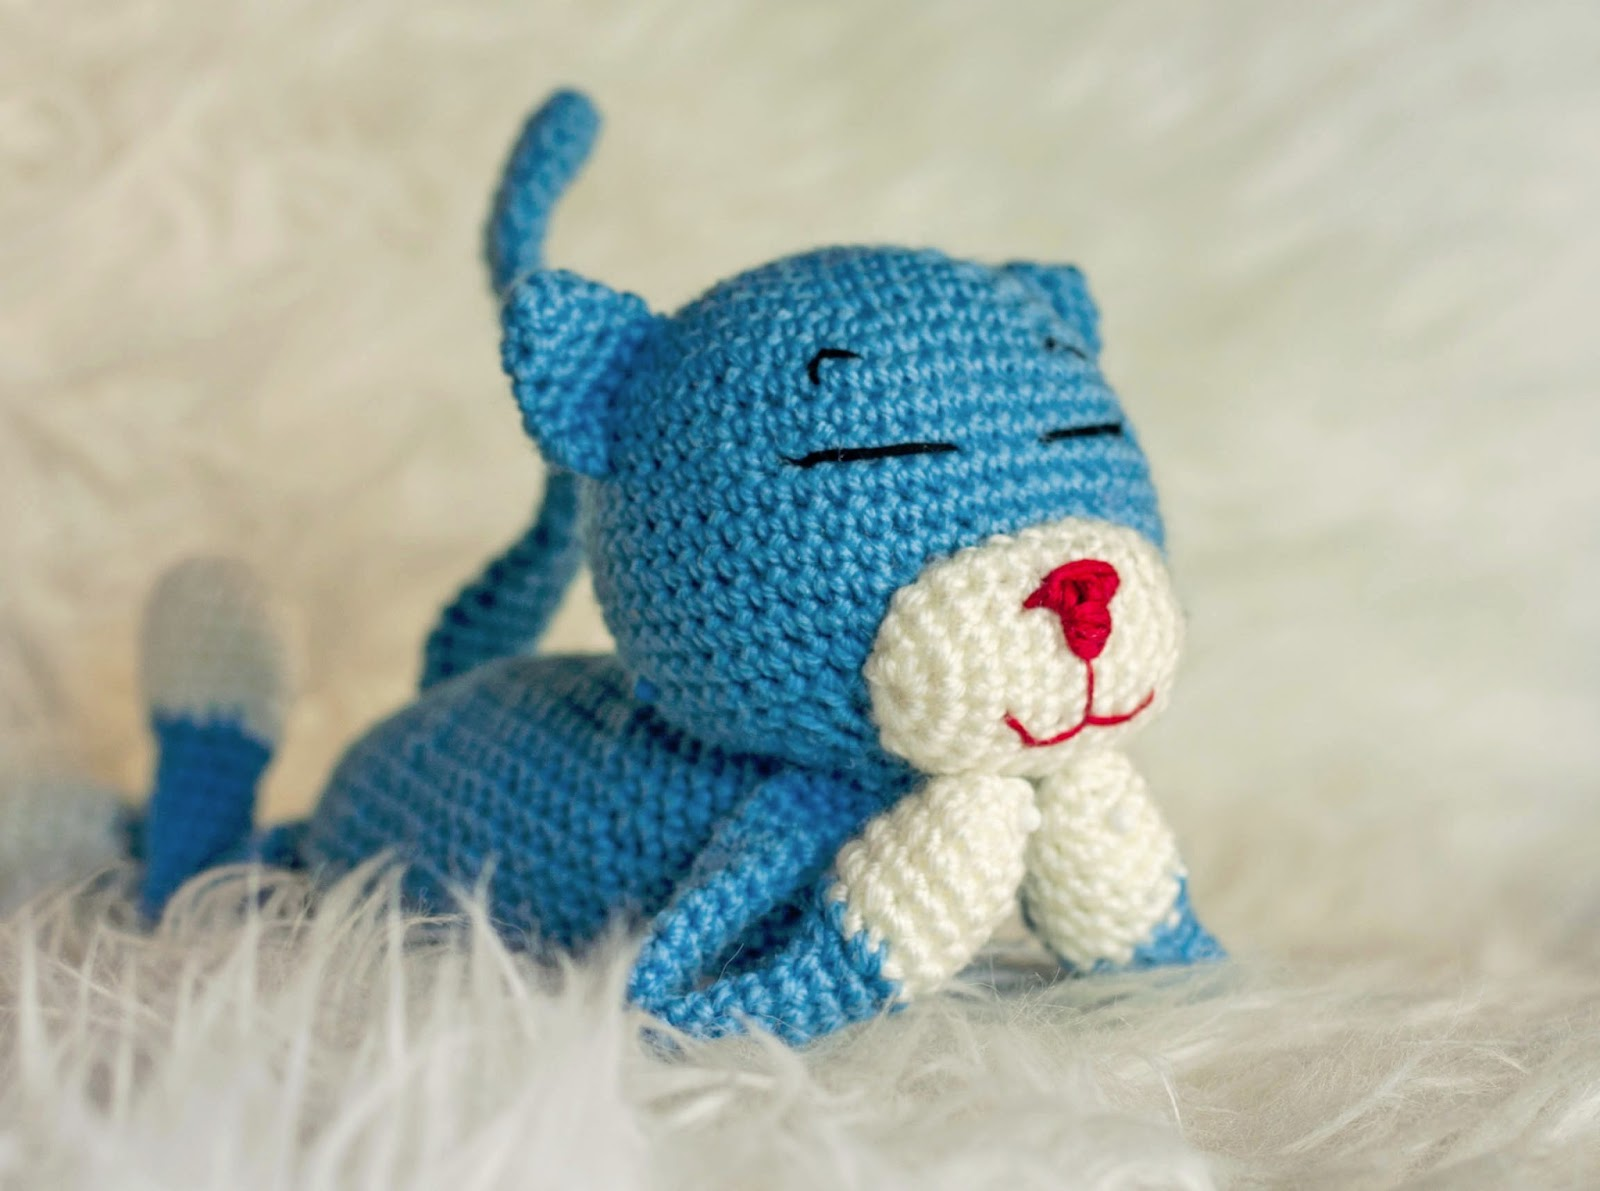 Crocheting Cats : The Dapper Toad: Crochet Kitty (free pattern link!)